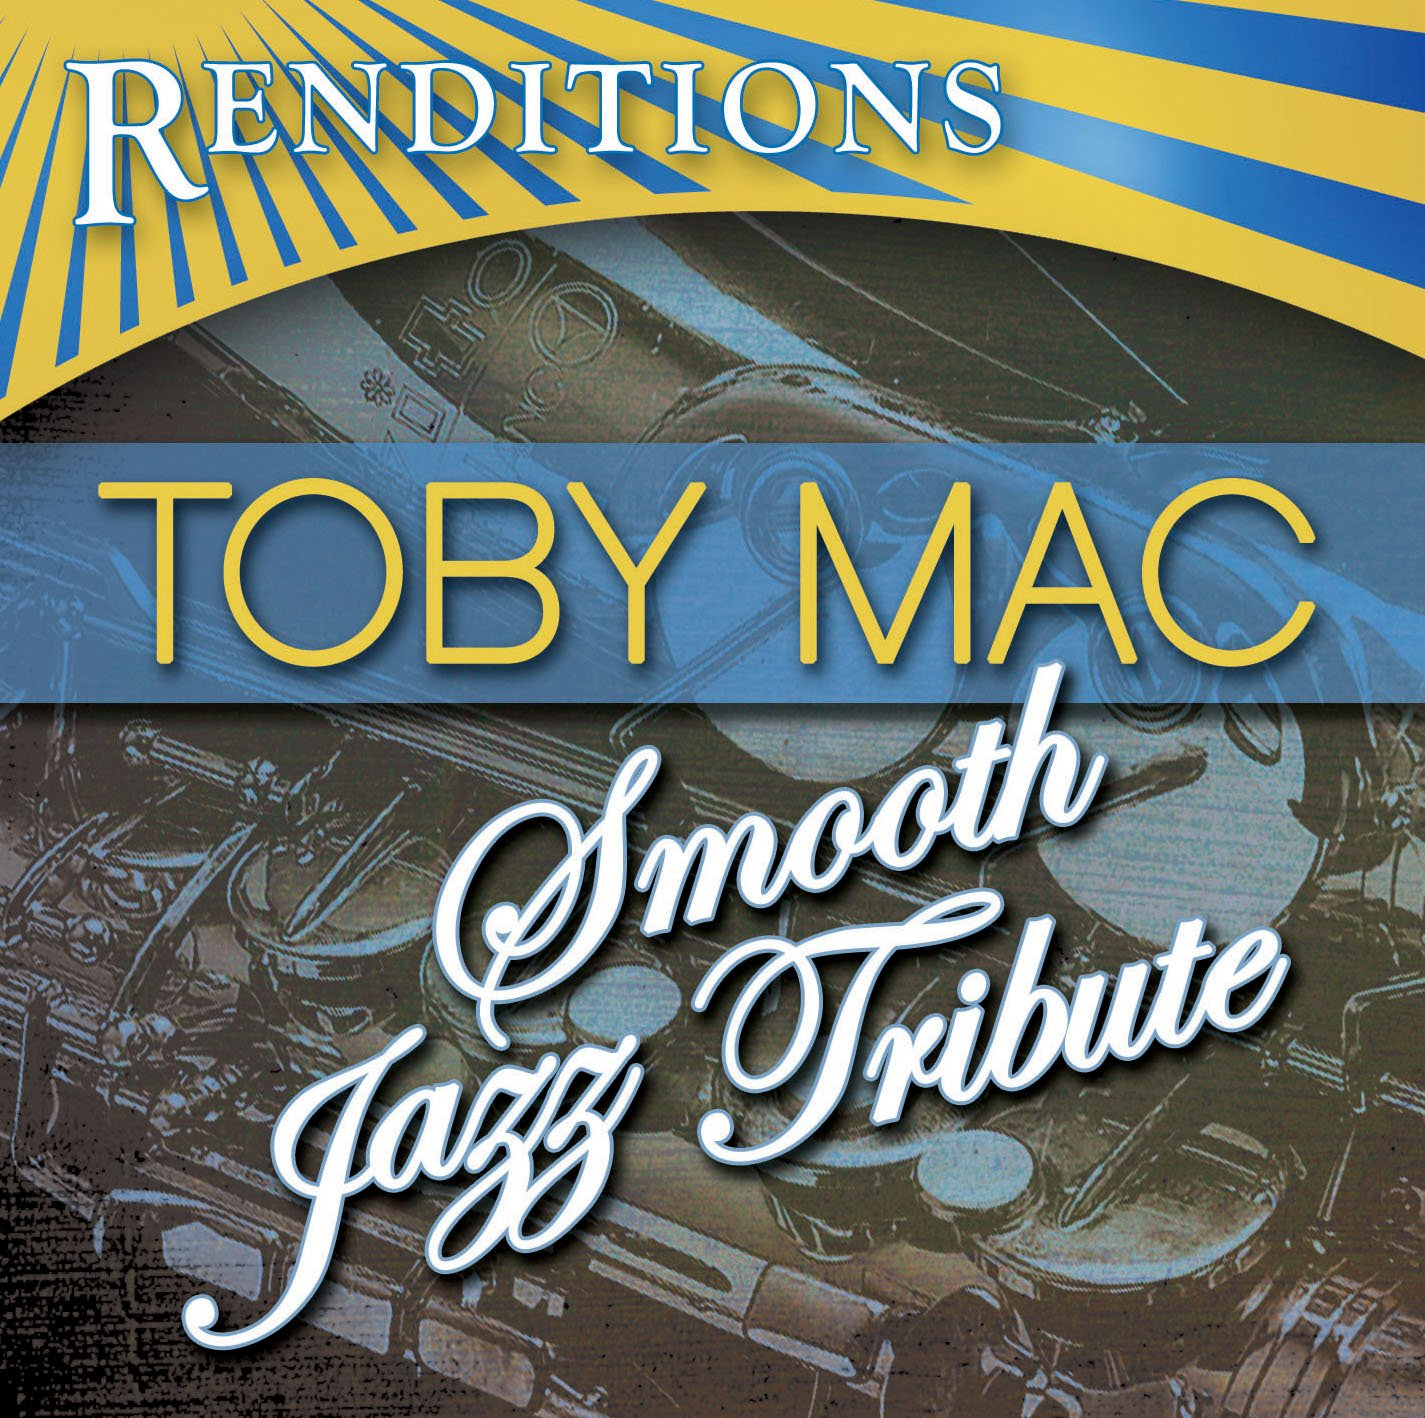 Renditions: Tobymac Smooth Jazz Tribute